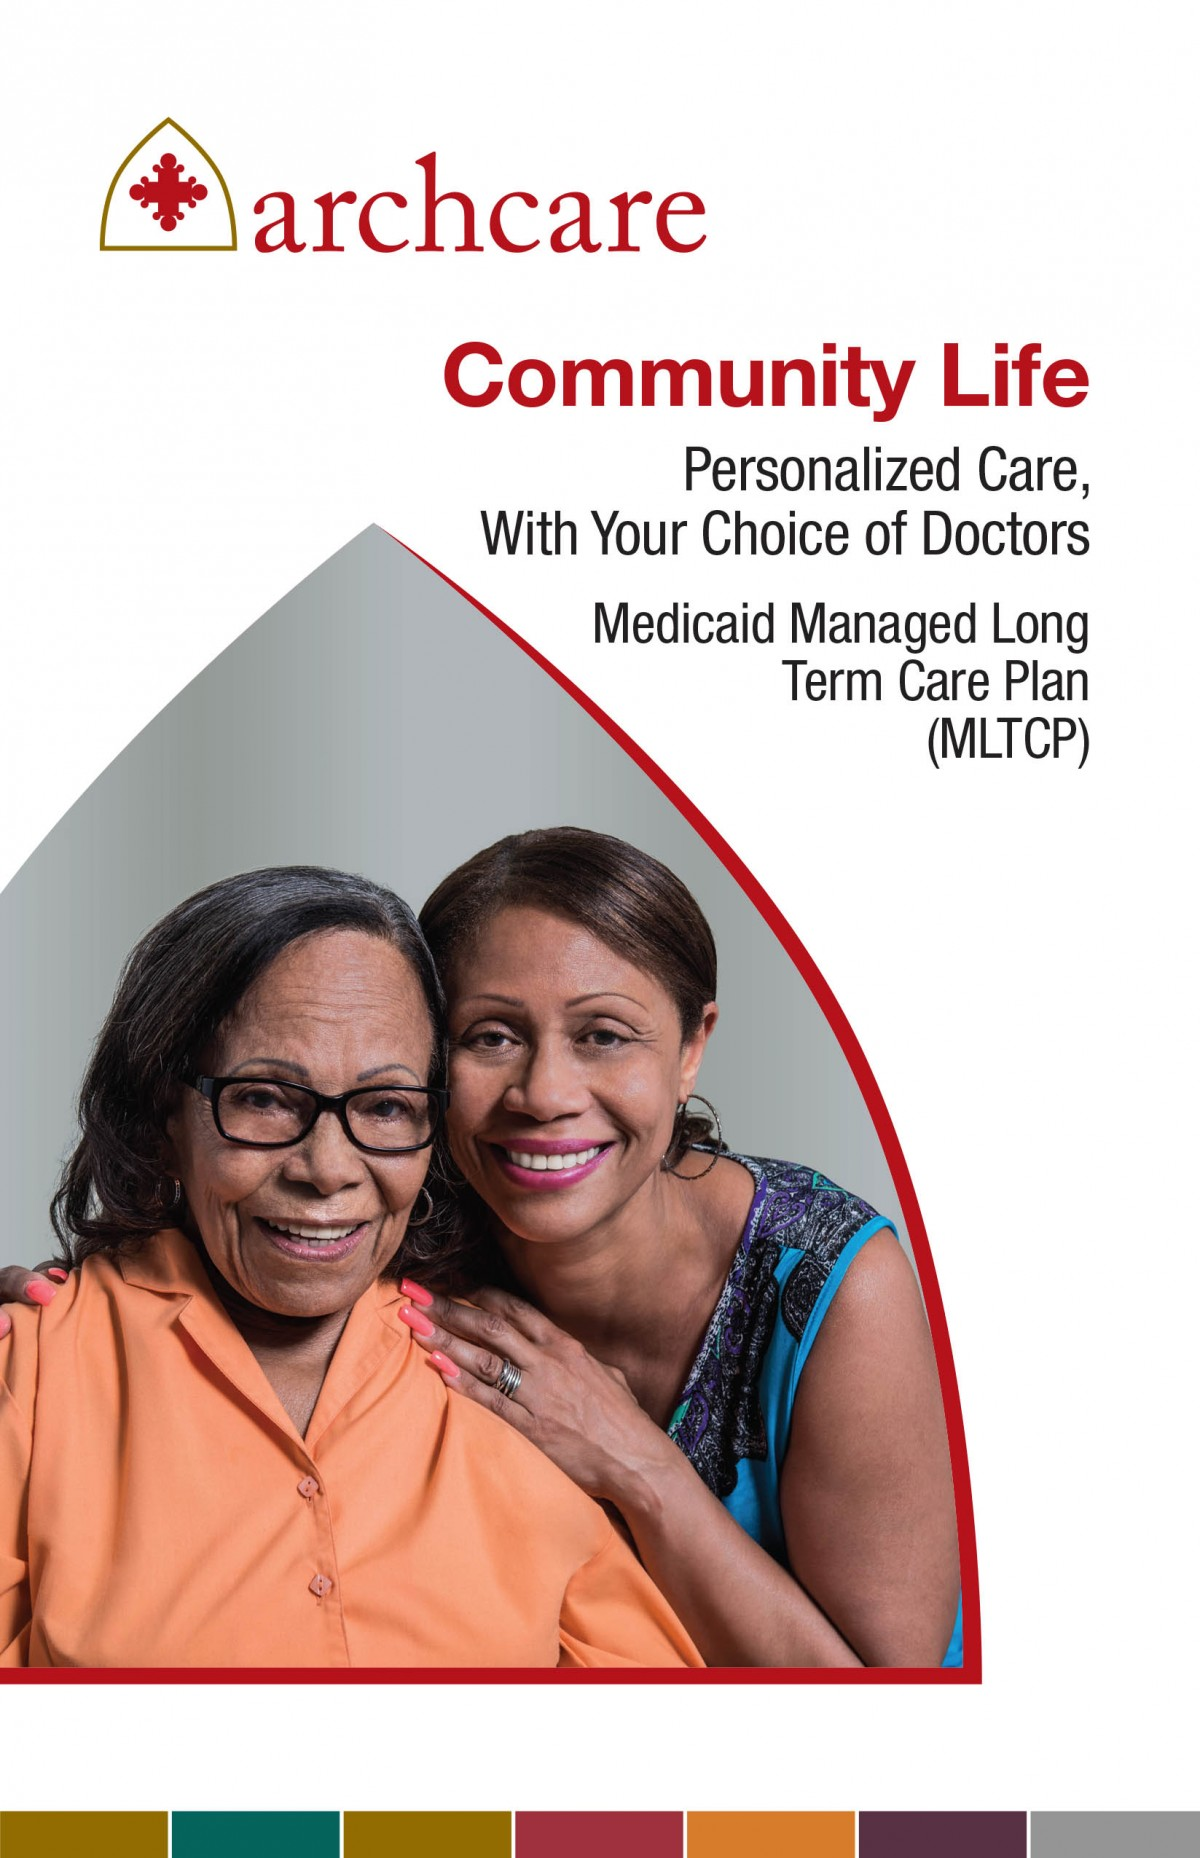 ArchCare Community Life Personalized Care Brochure